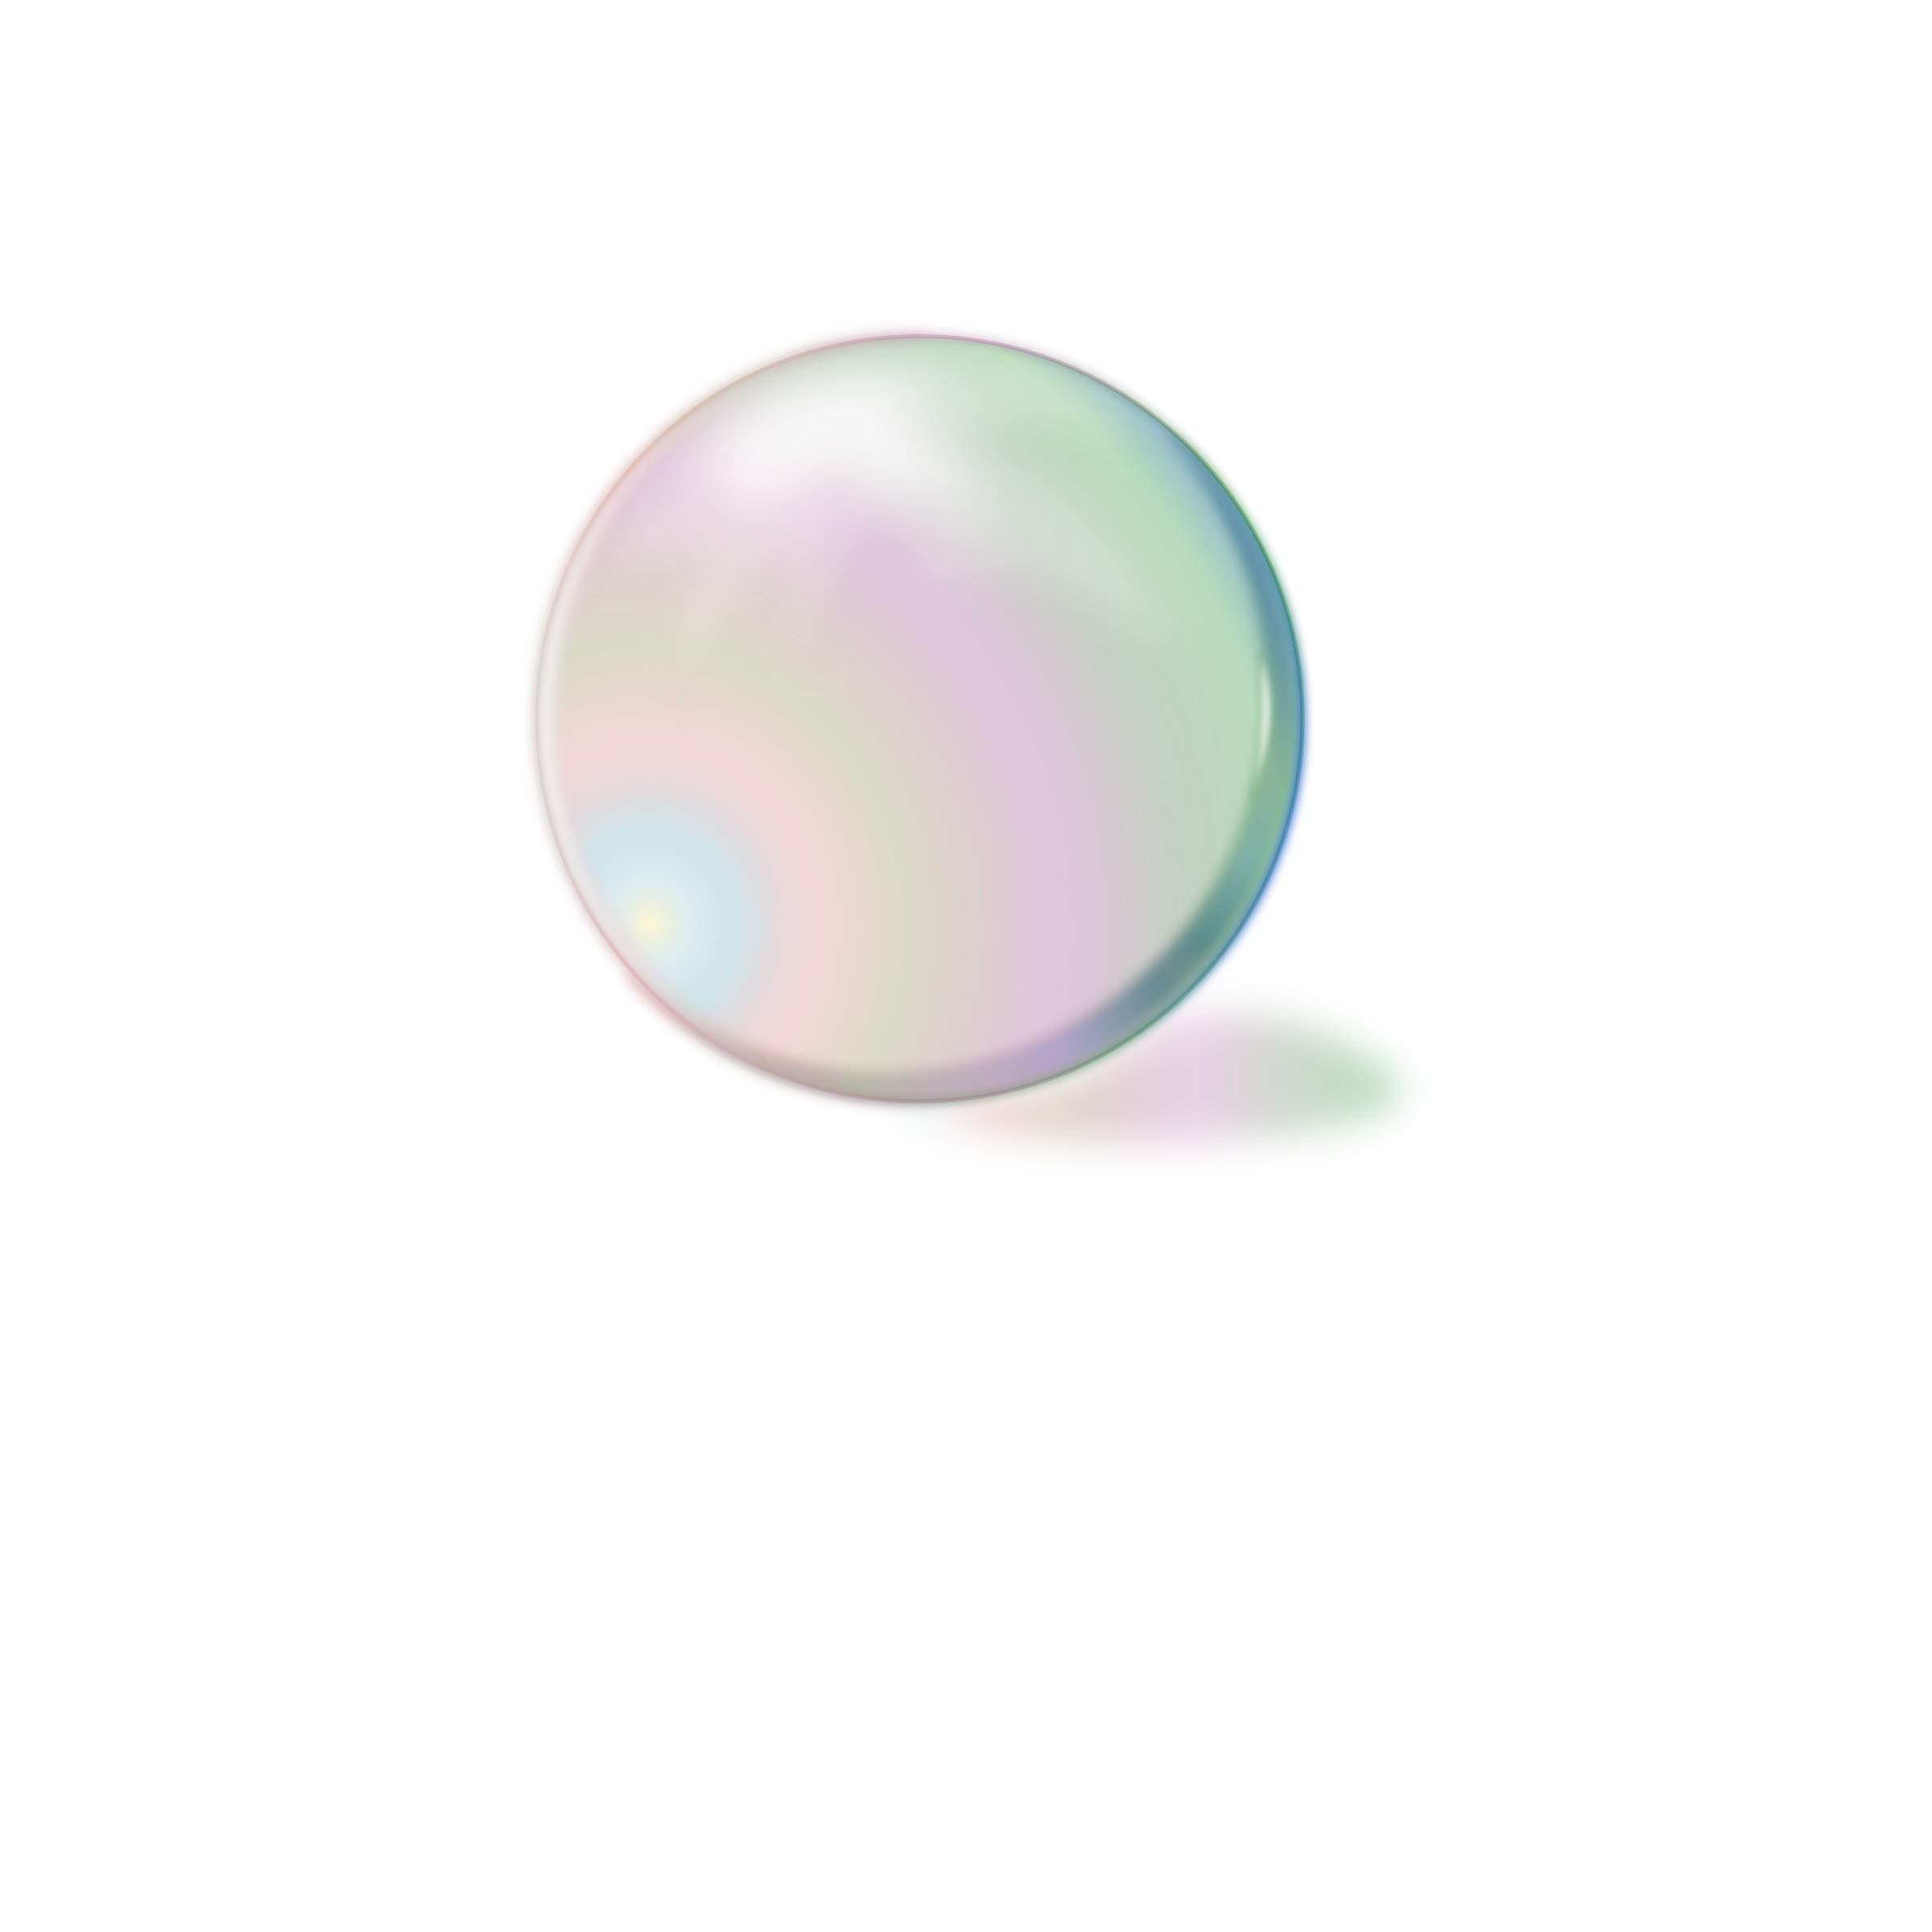 Bubble Ball Png image #44347